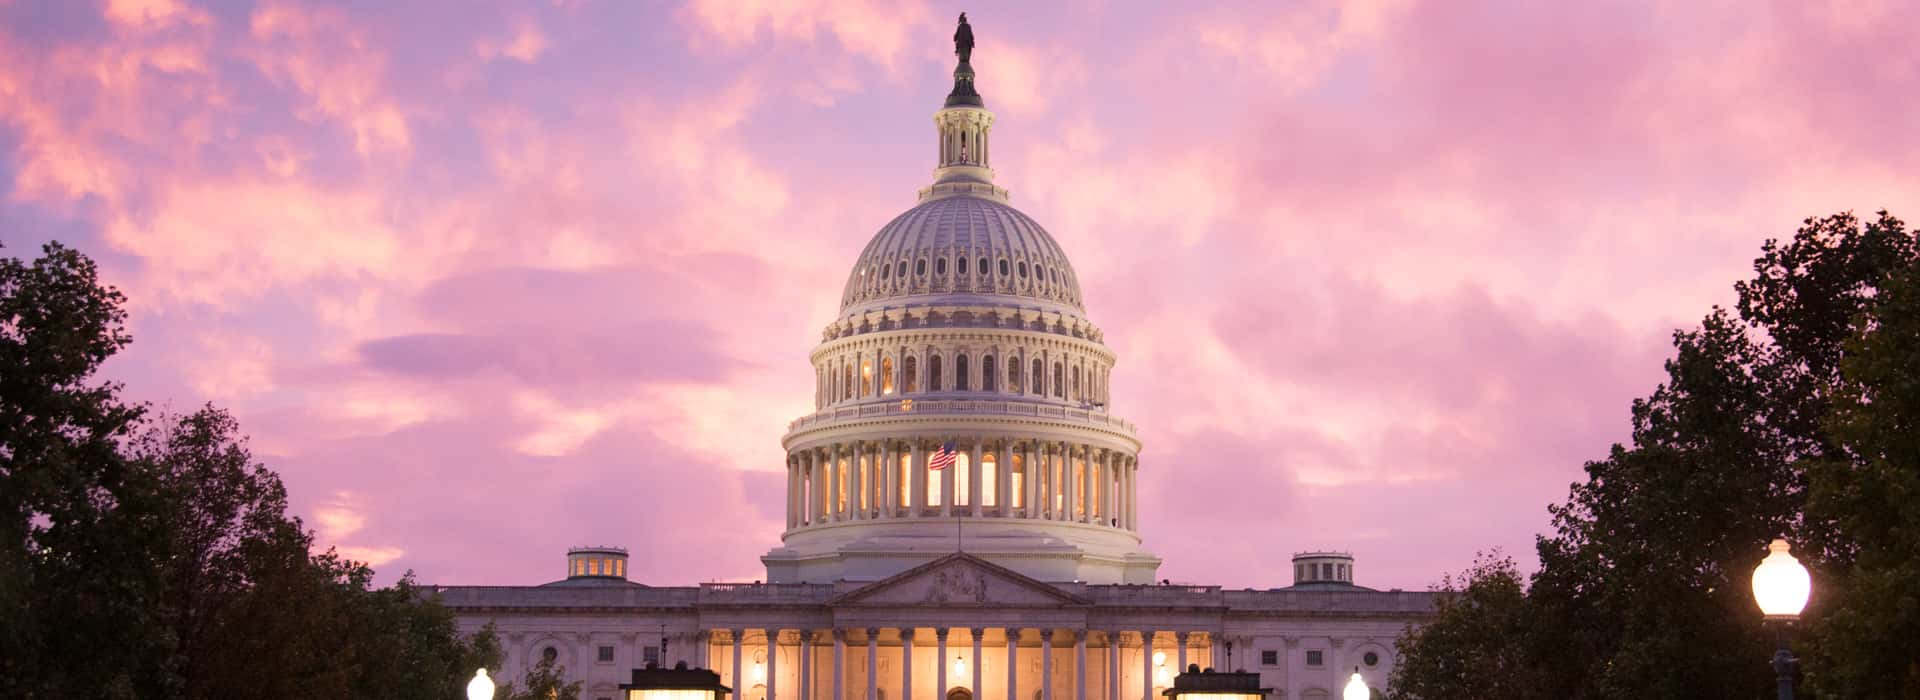 An evening/dusk shot of the U.S. Capitol dome.